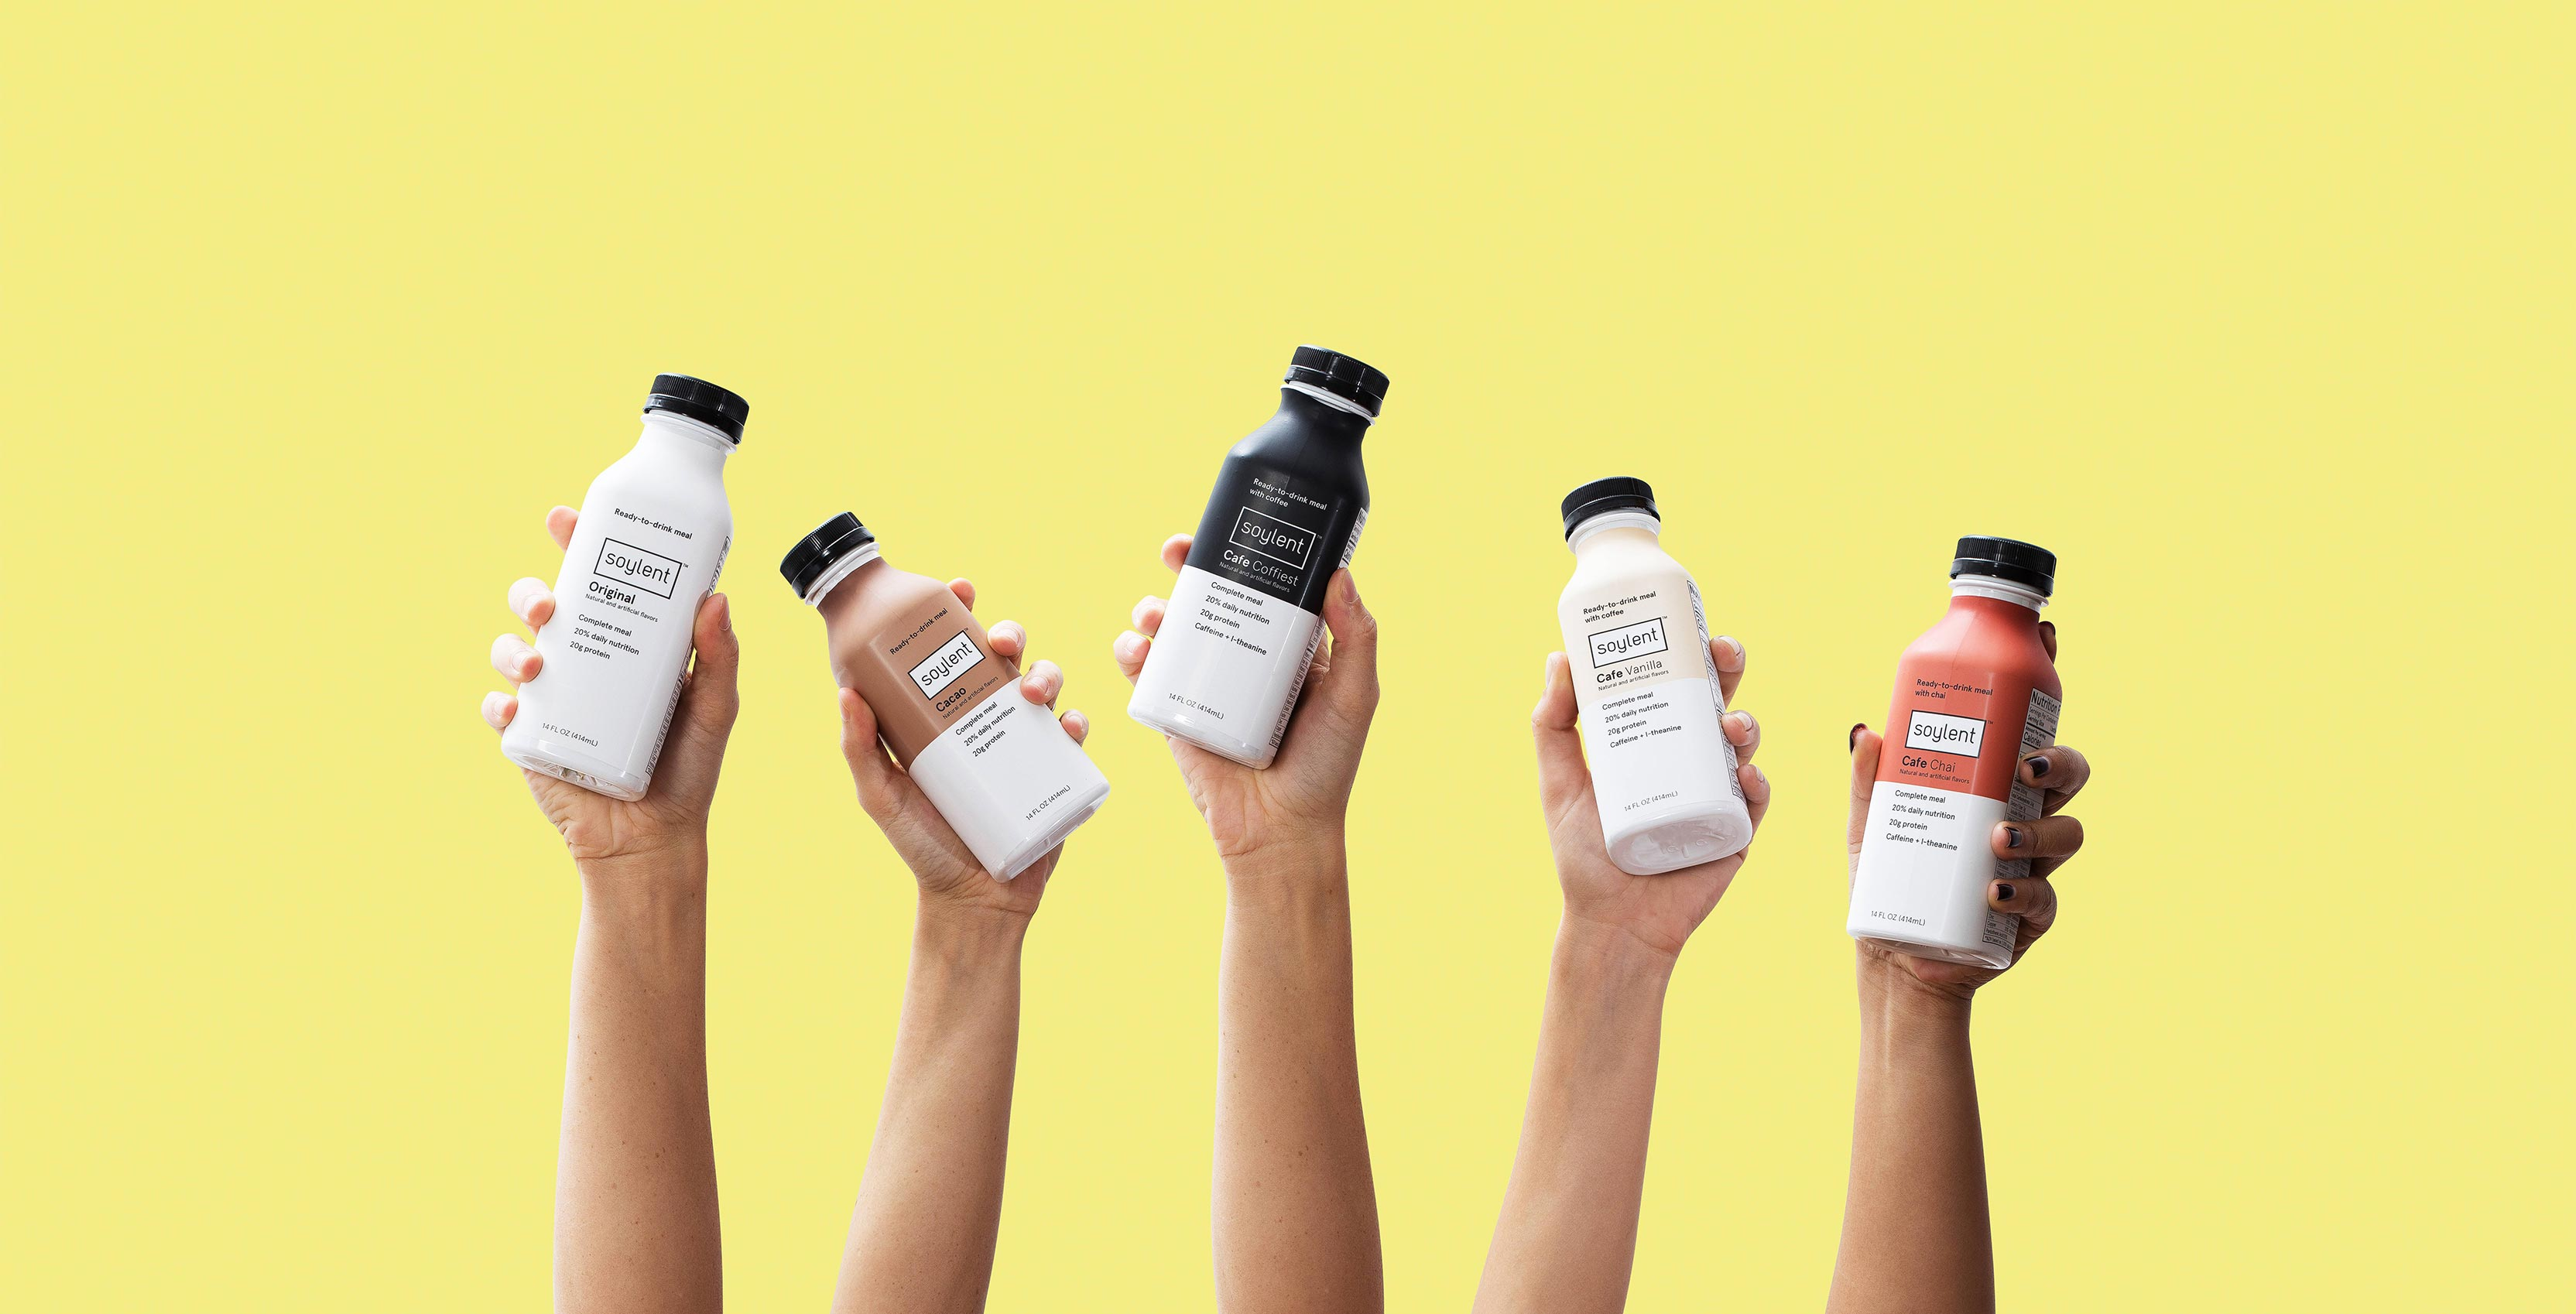 soylent in hands